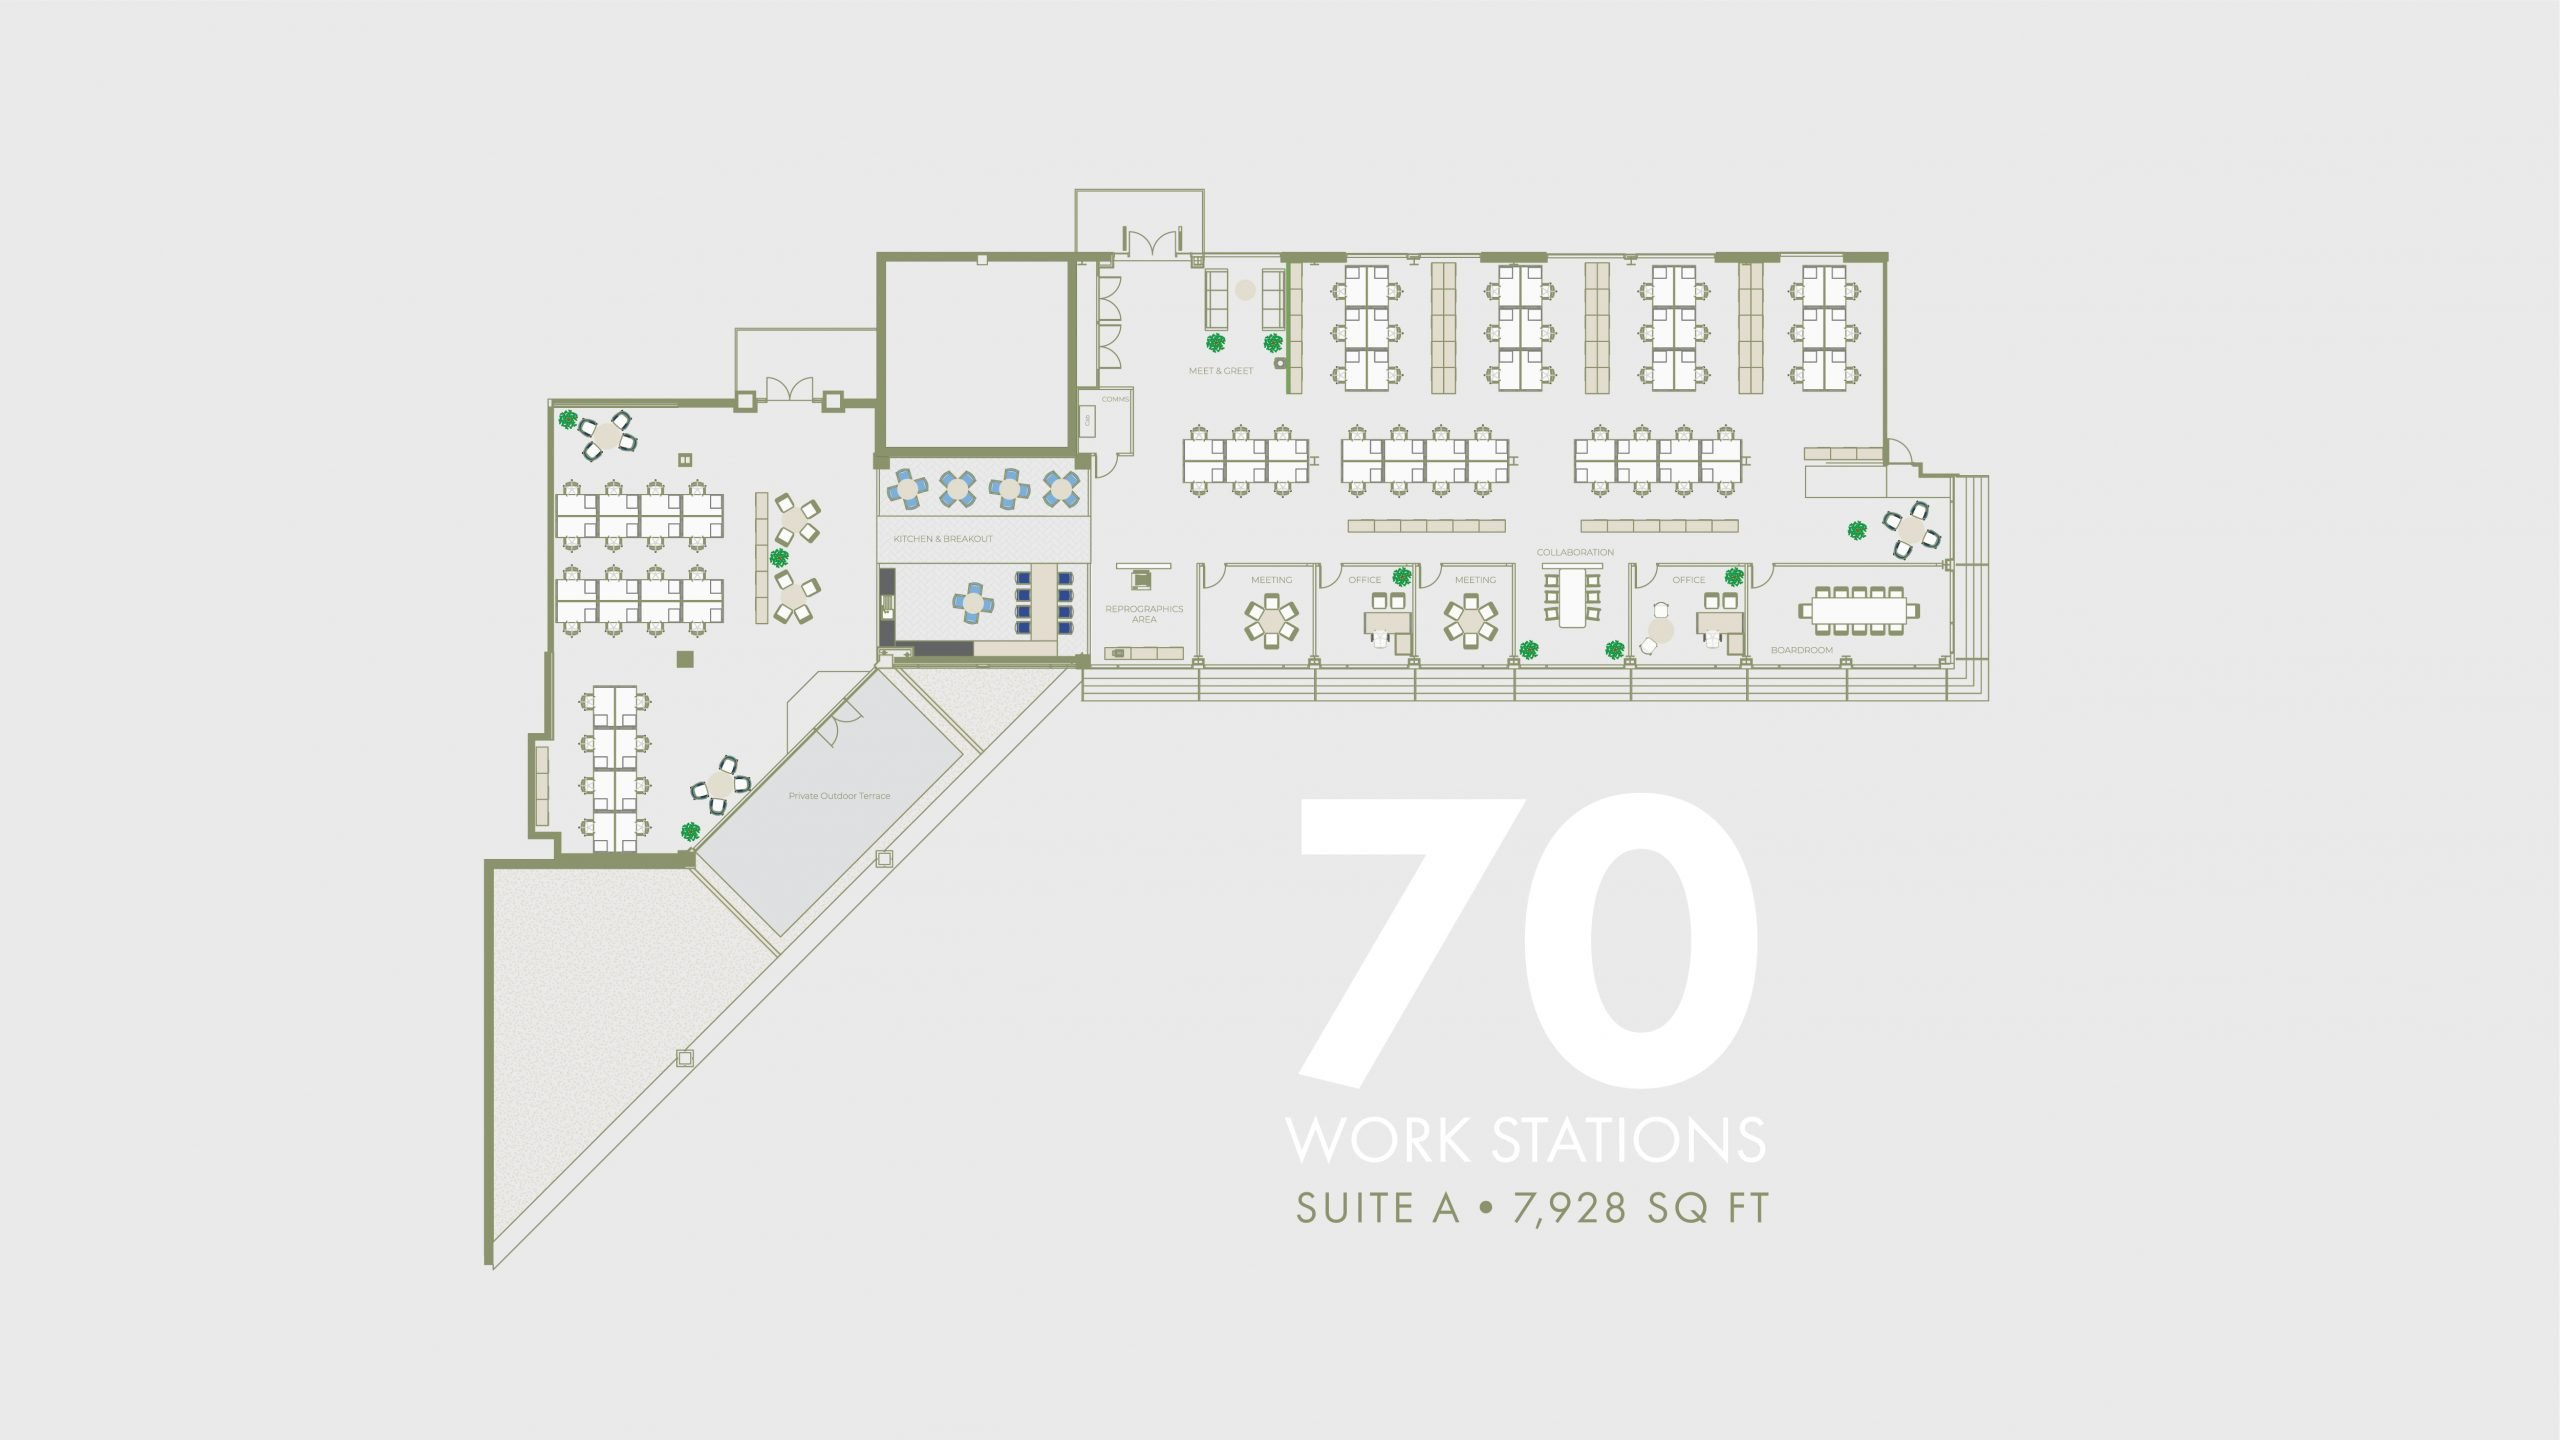 Indicative Space Planning